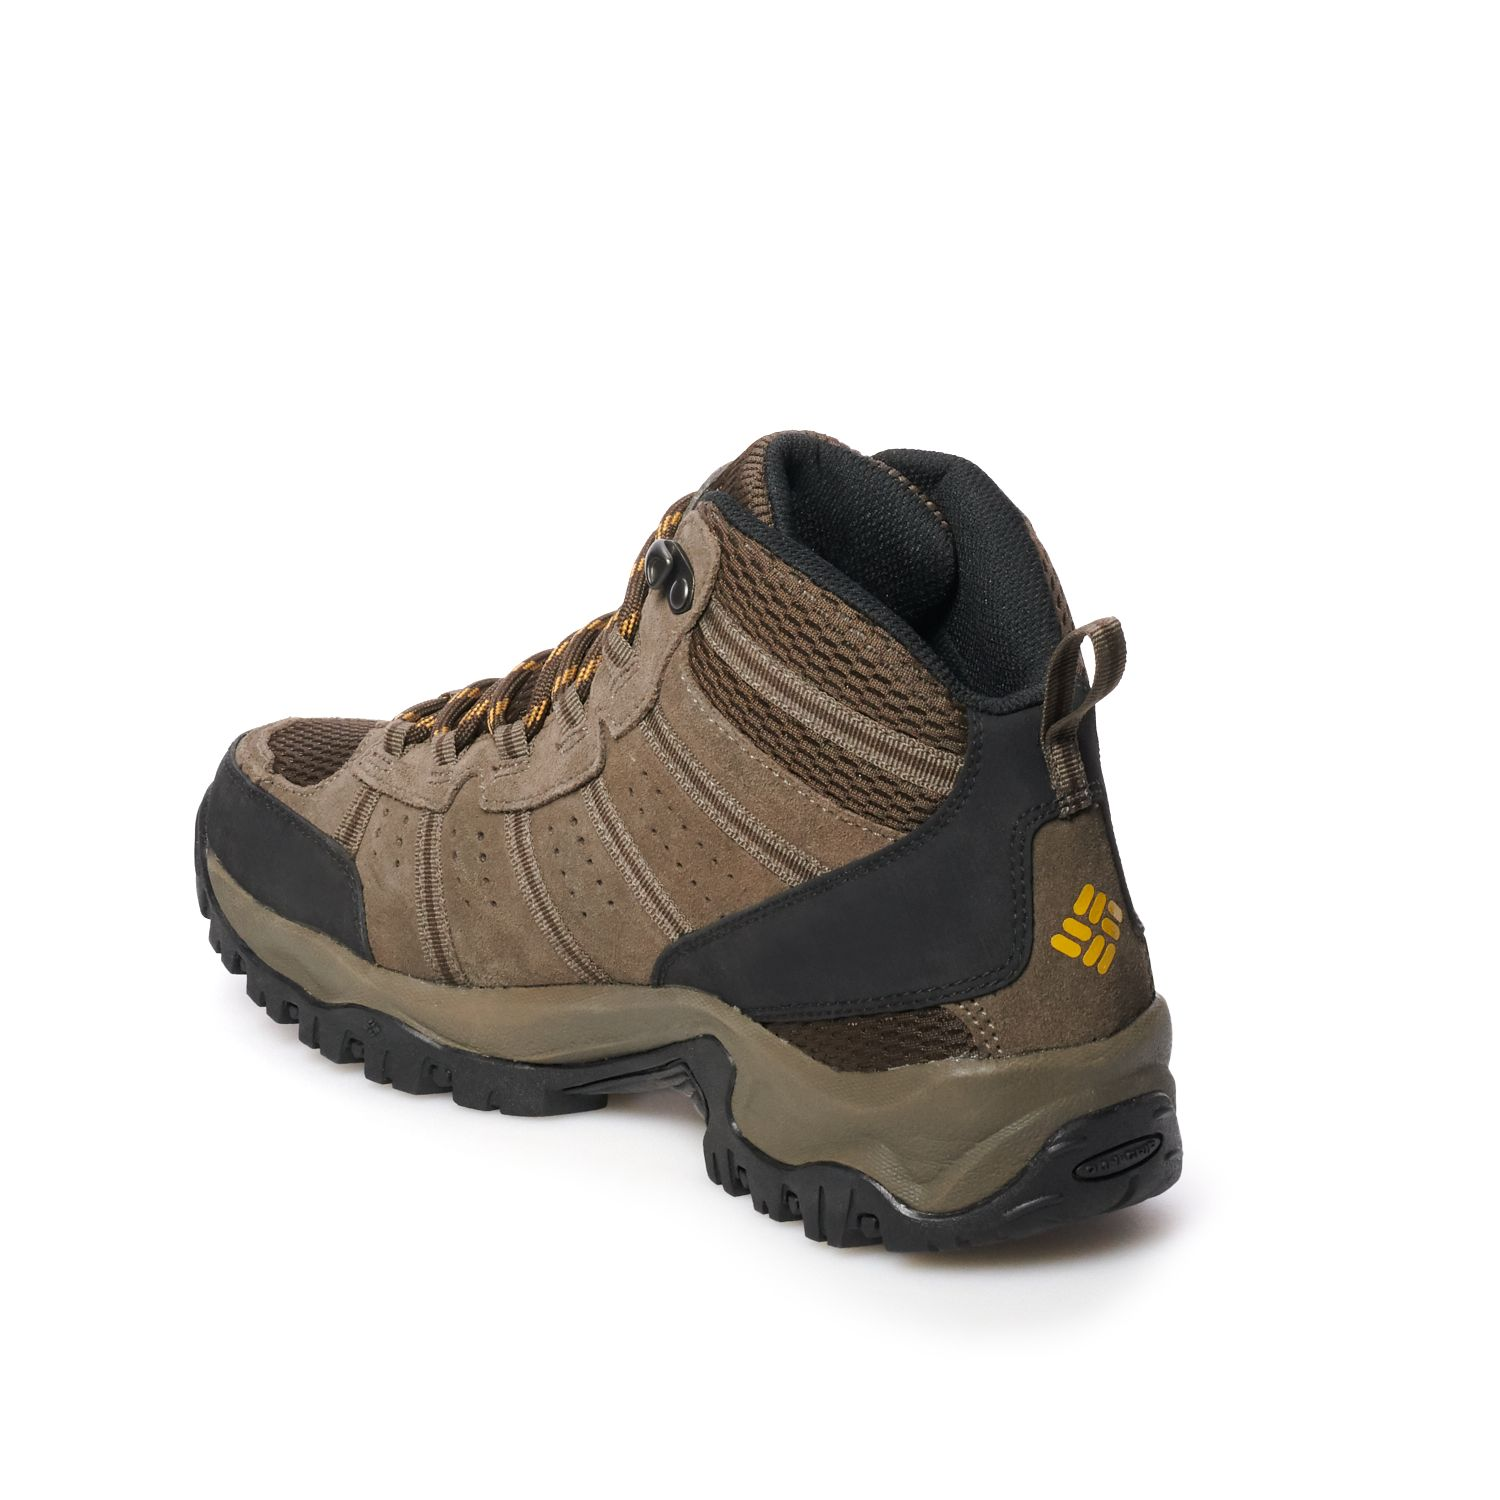 6f1165720b05e Mens Outdoor Boots - Shoes | Kohl's